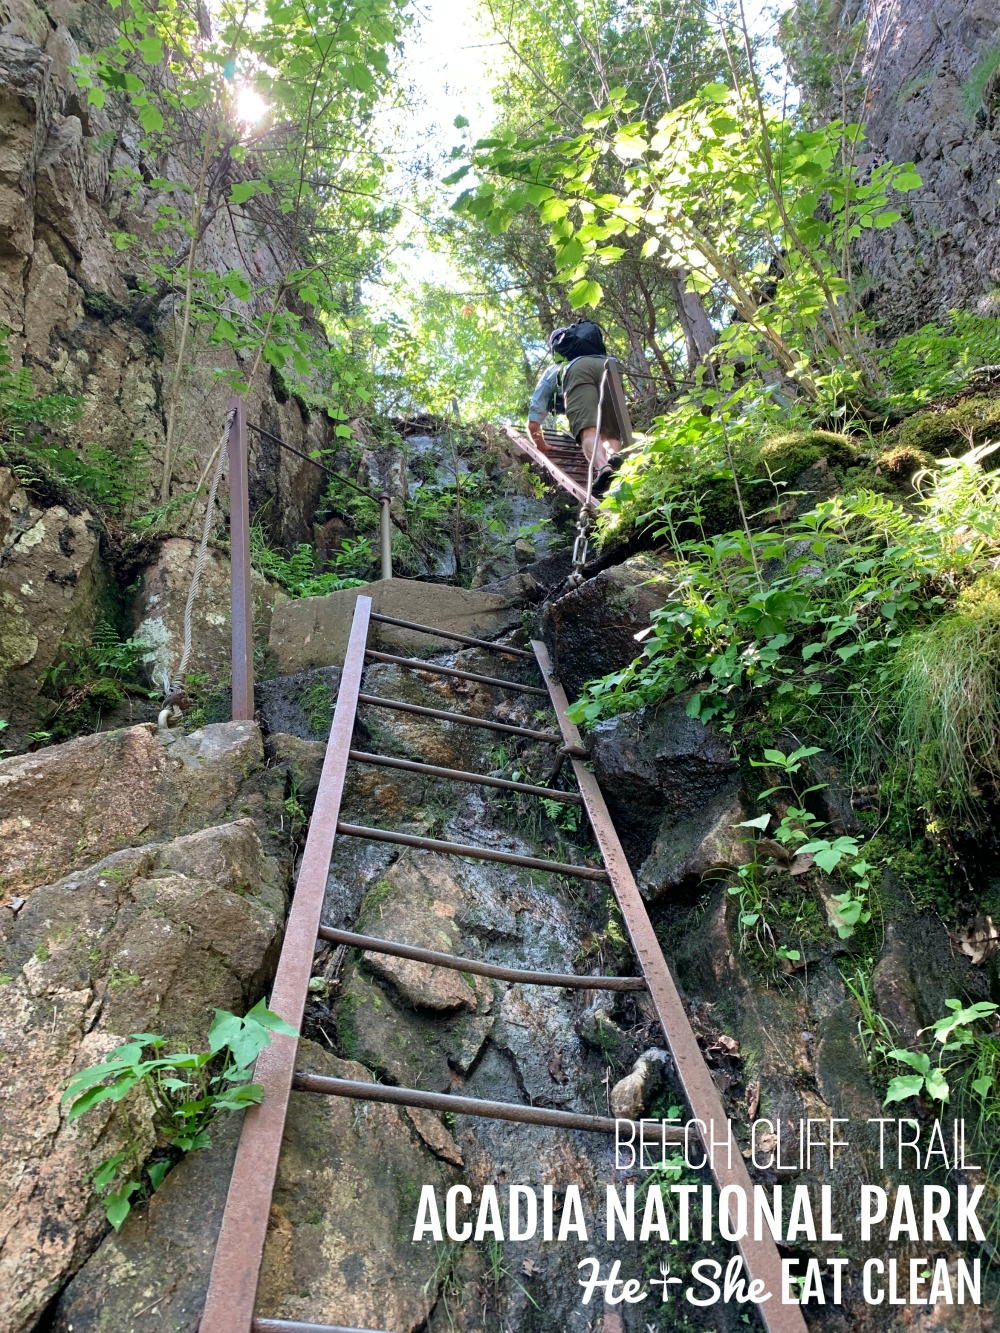 long ladders going up large rocks in order to hike Beech Cliff Trail in Acadia National Park